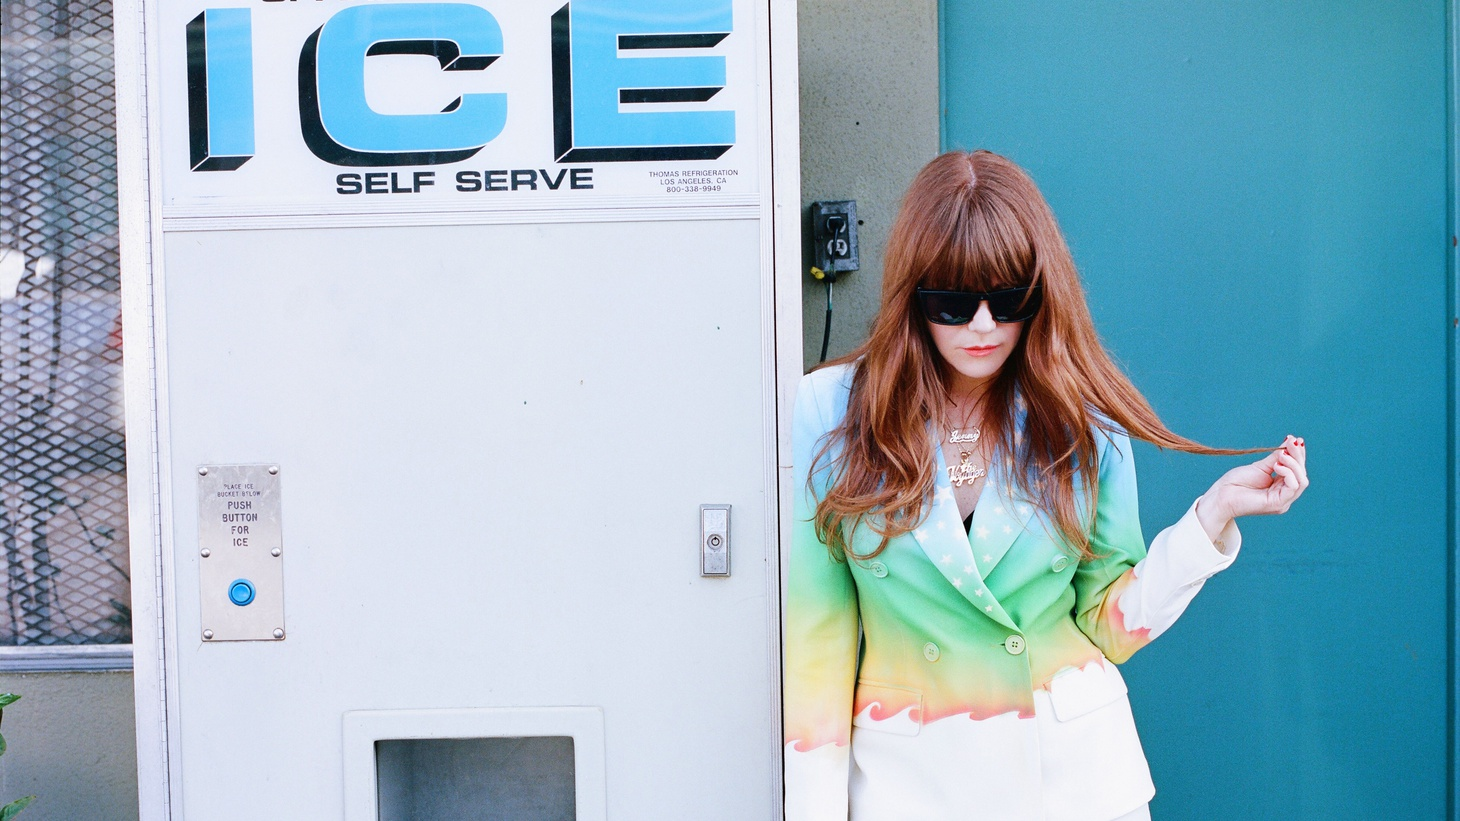 LA darling Jenny Lewis performed a live set for us at Apogee Studio while she was touring behind her third solo album, The Voyager, her most personal album yet.